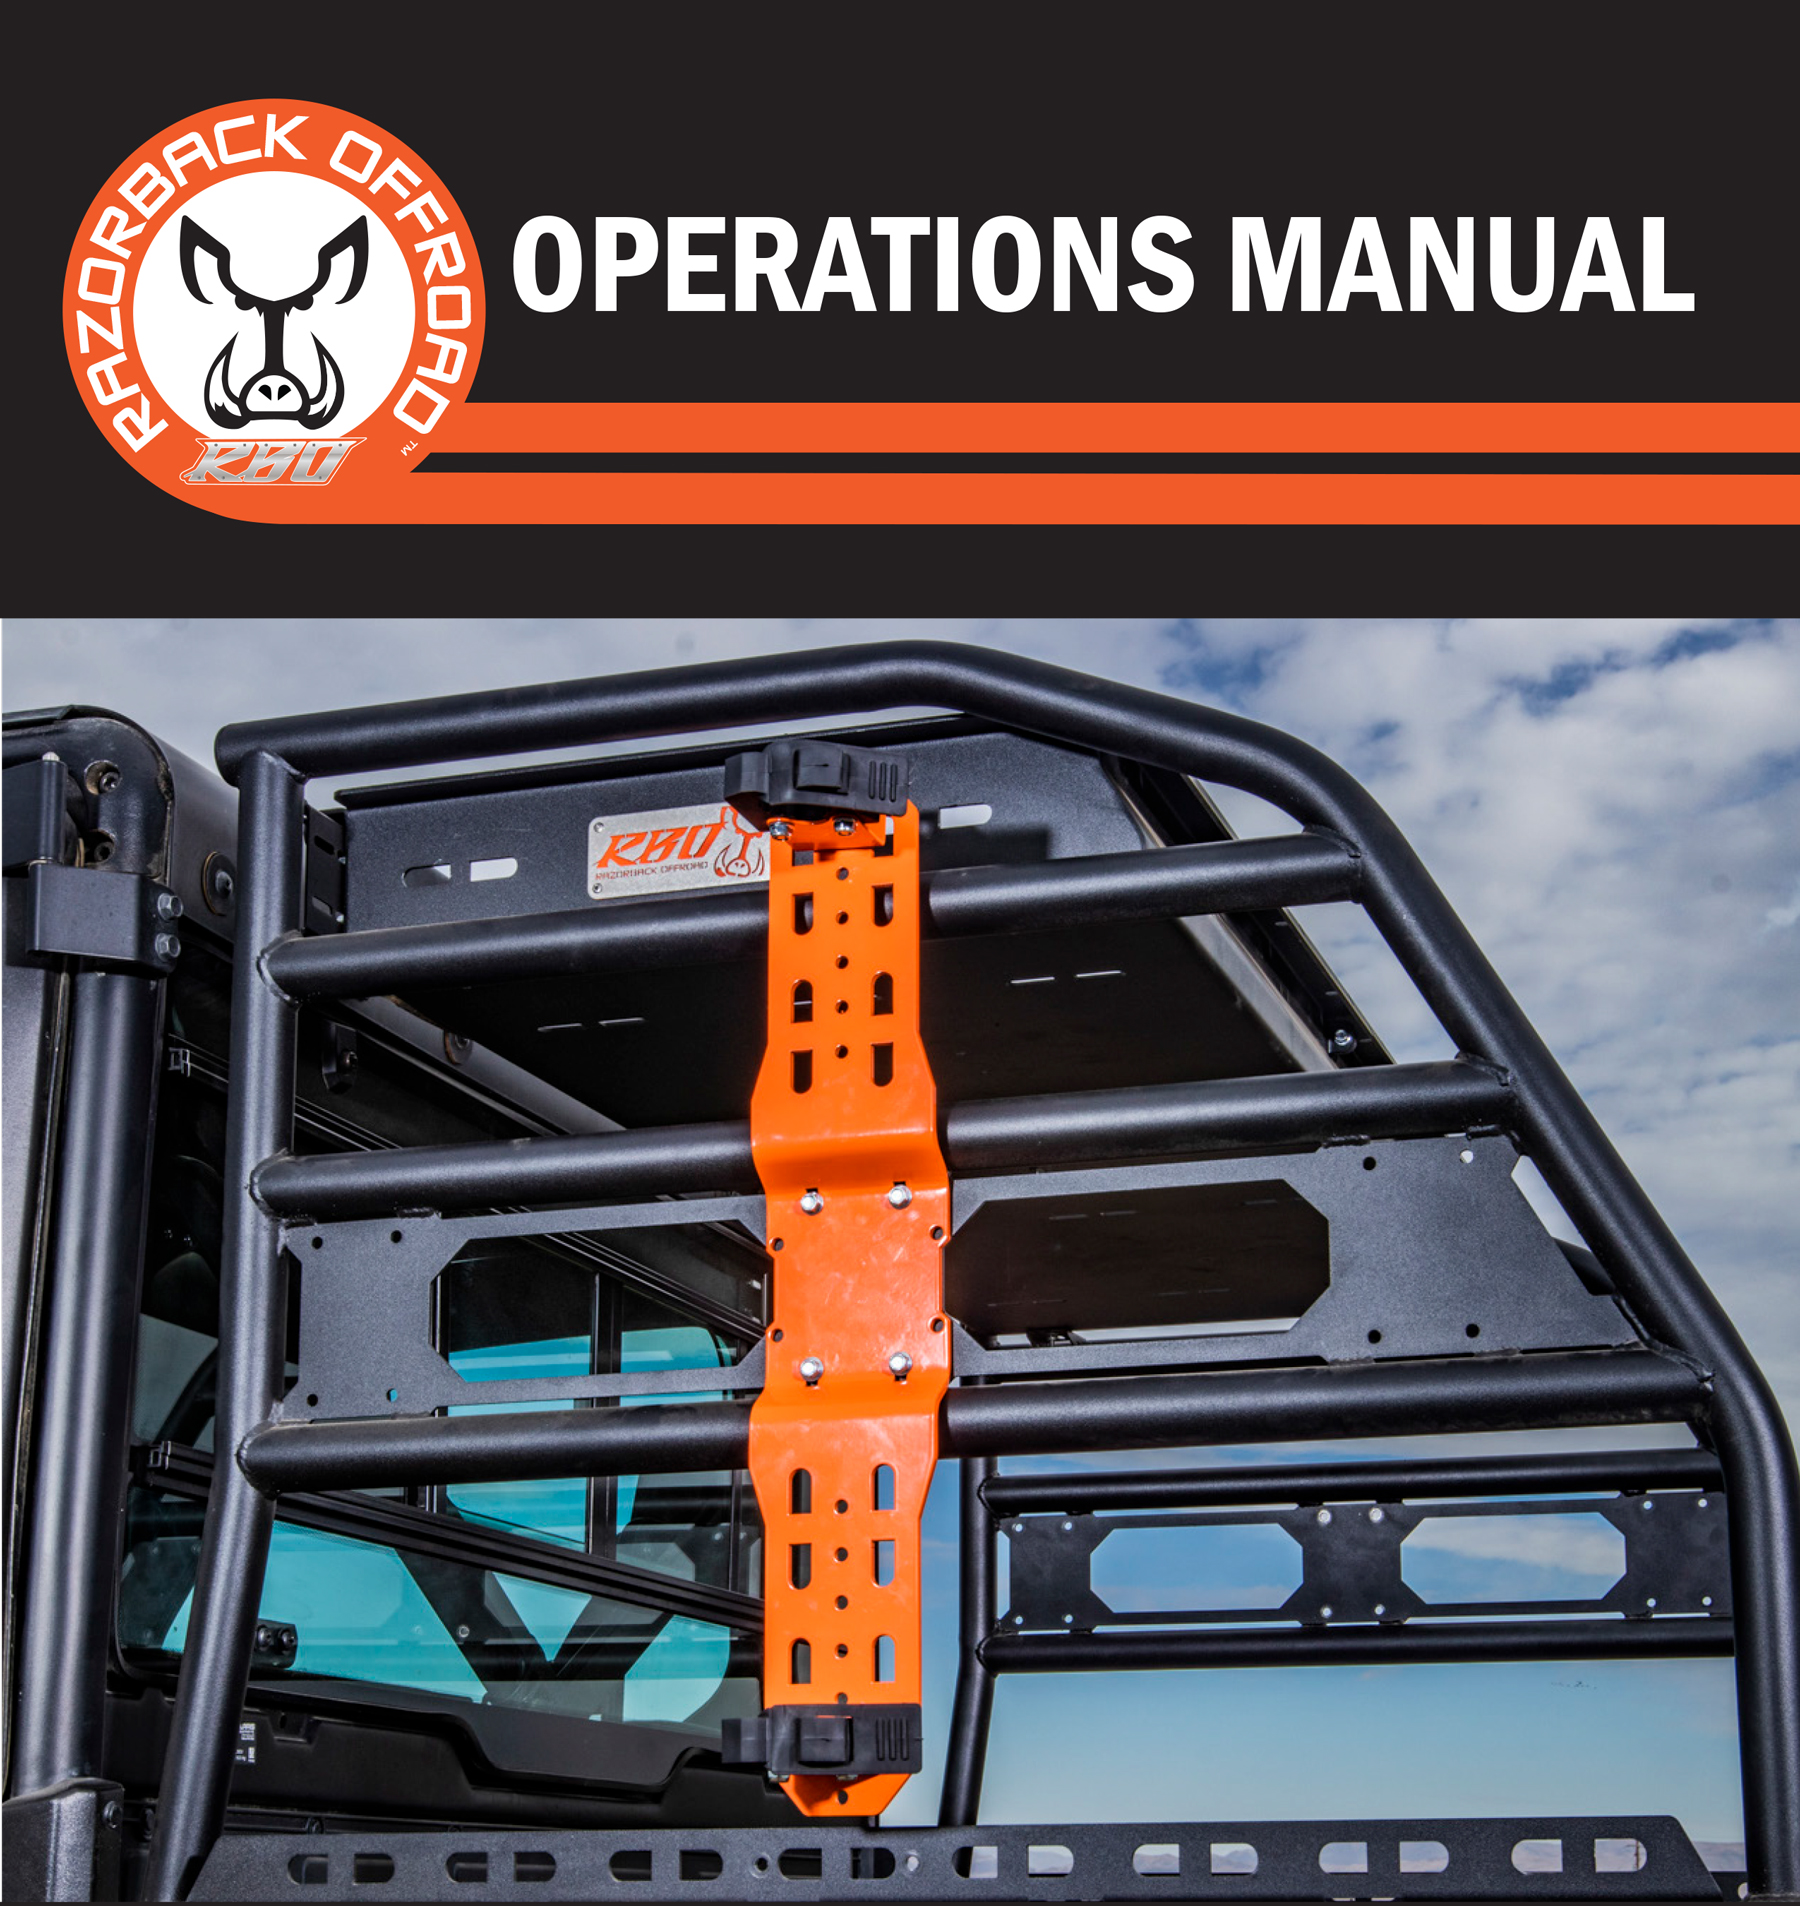 Operations product manual cover for Universal Mount